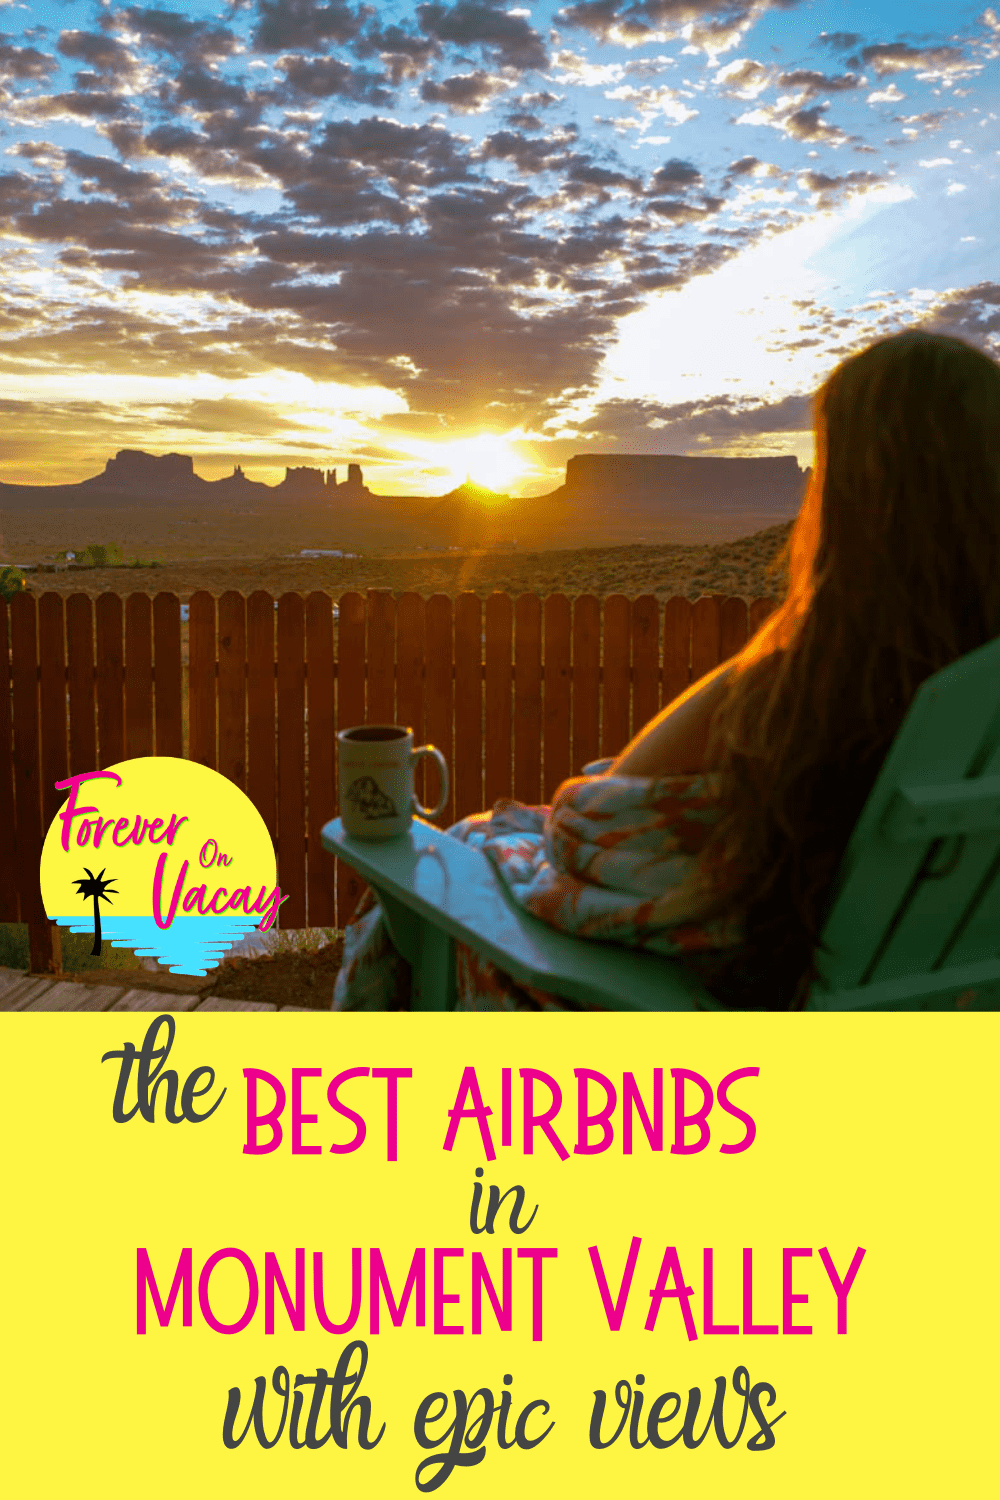 Pin this: Best Airbnbs in Monument Valley with epic views